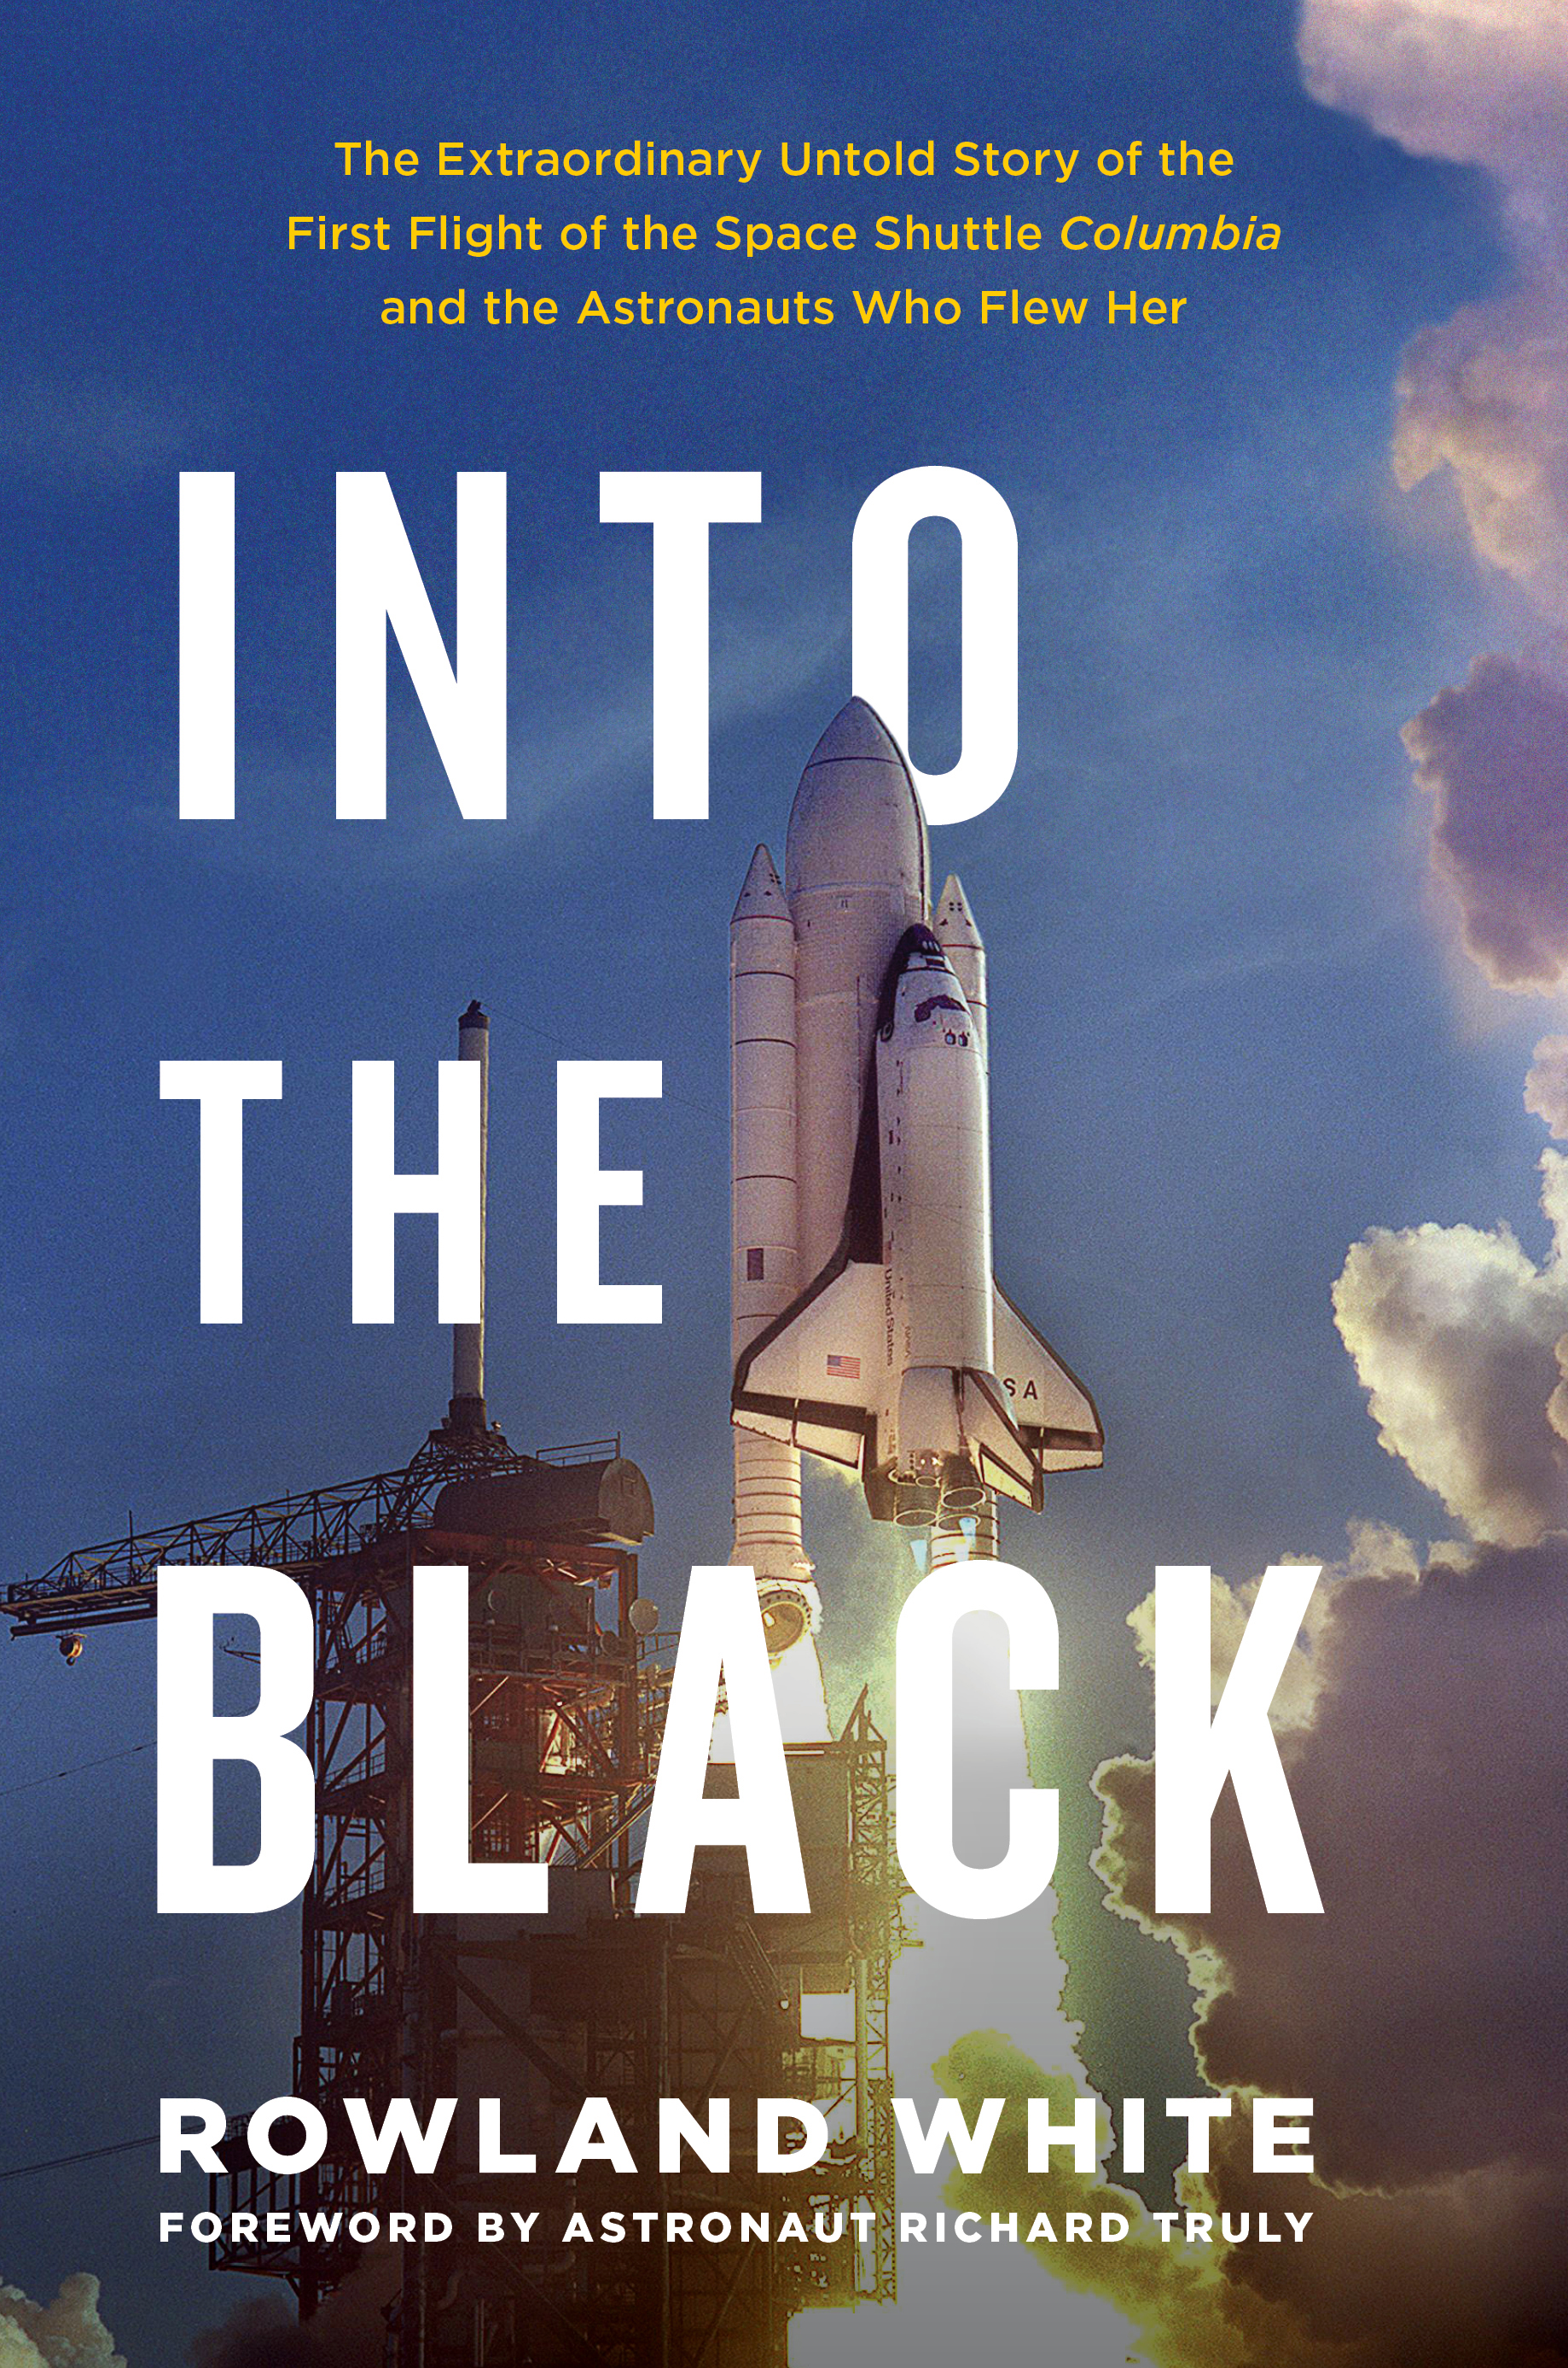 'Into the Black': Book Recounts Untold Story of 1st Space Shuttle Flight